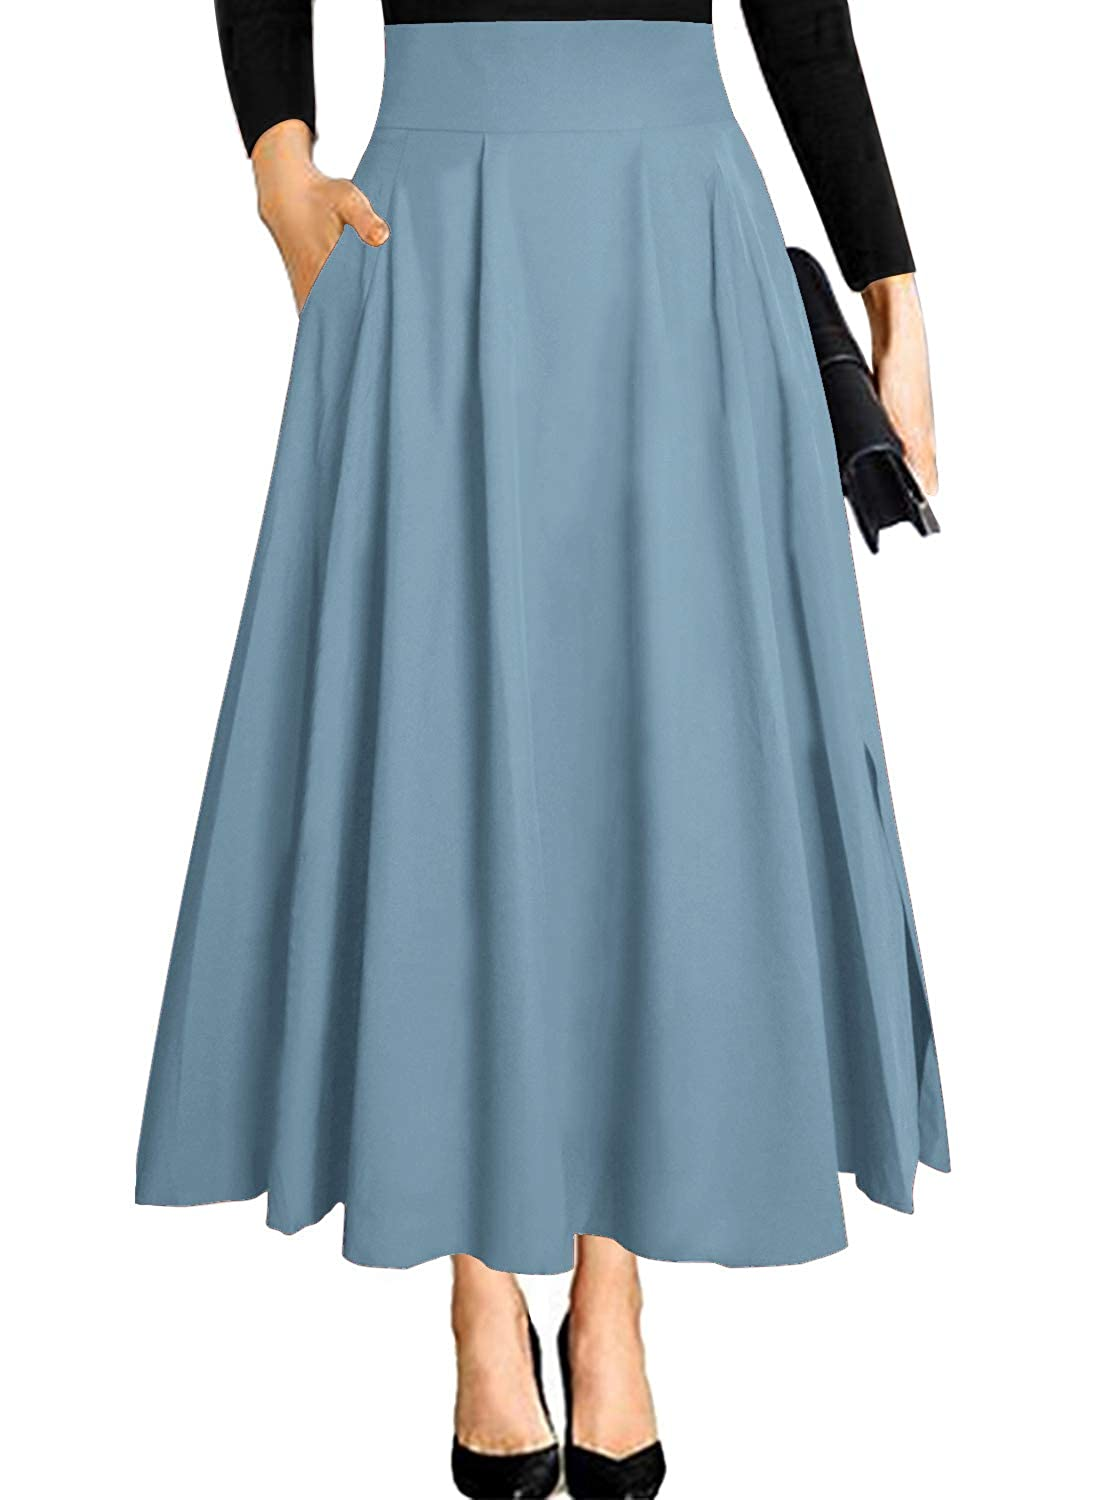 1900 -1910s Edwardian Fashion, Clothing & Costumes Ranphee Womens Ankle Length High Waist A-line Flowy Long Maxi Skirt with Pockets $25.99 AT vintagedancer.com